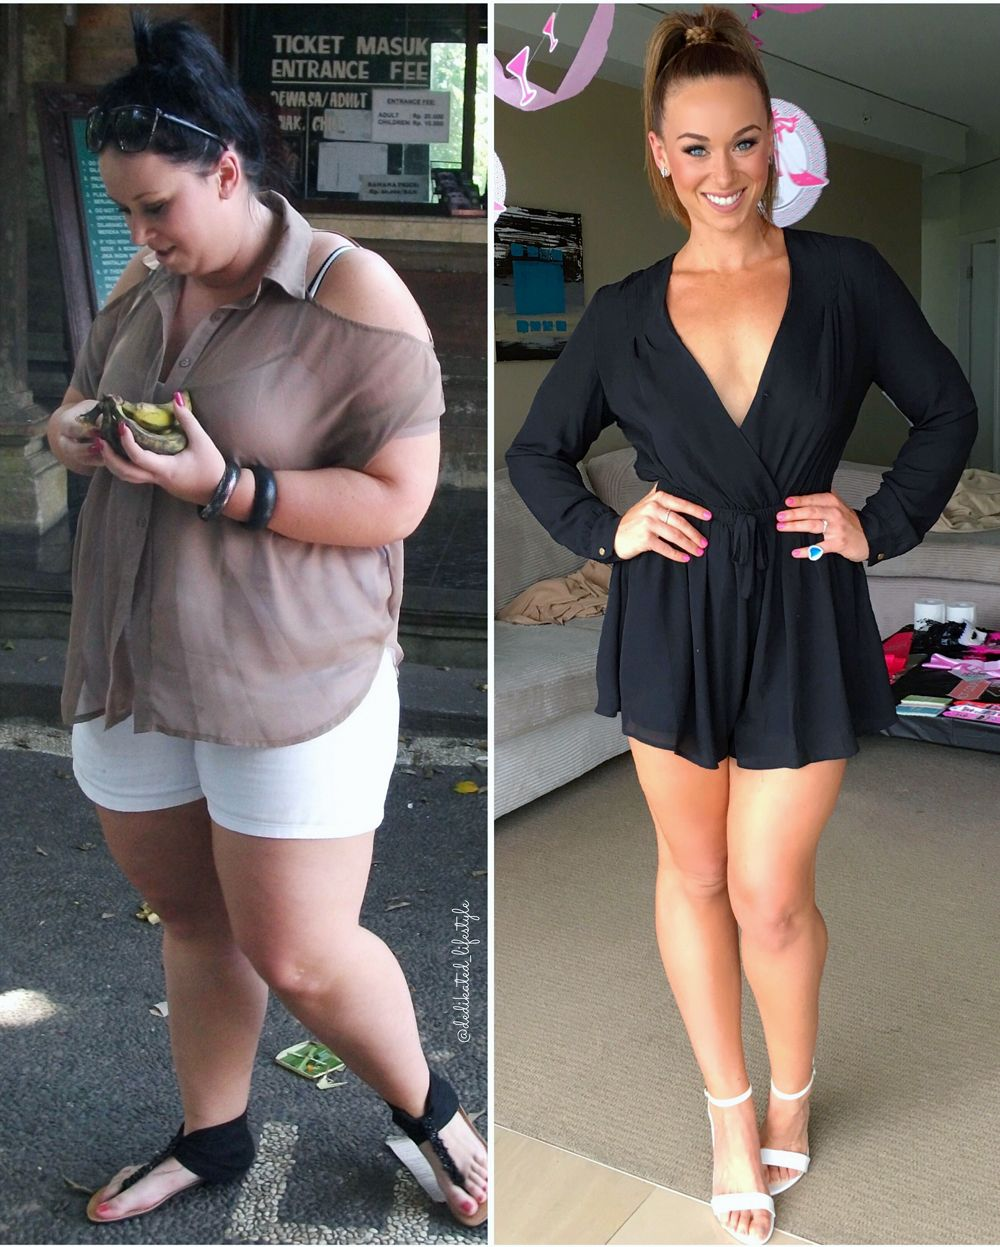 Kate Writer's Full Training & Diet Plan For How She Lost Over 50KGs In 1 Year -   8 1 year fitness Transformation